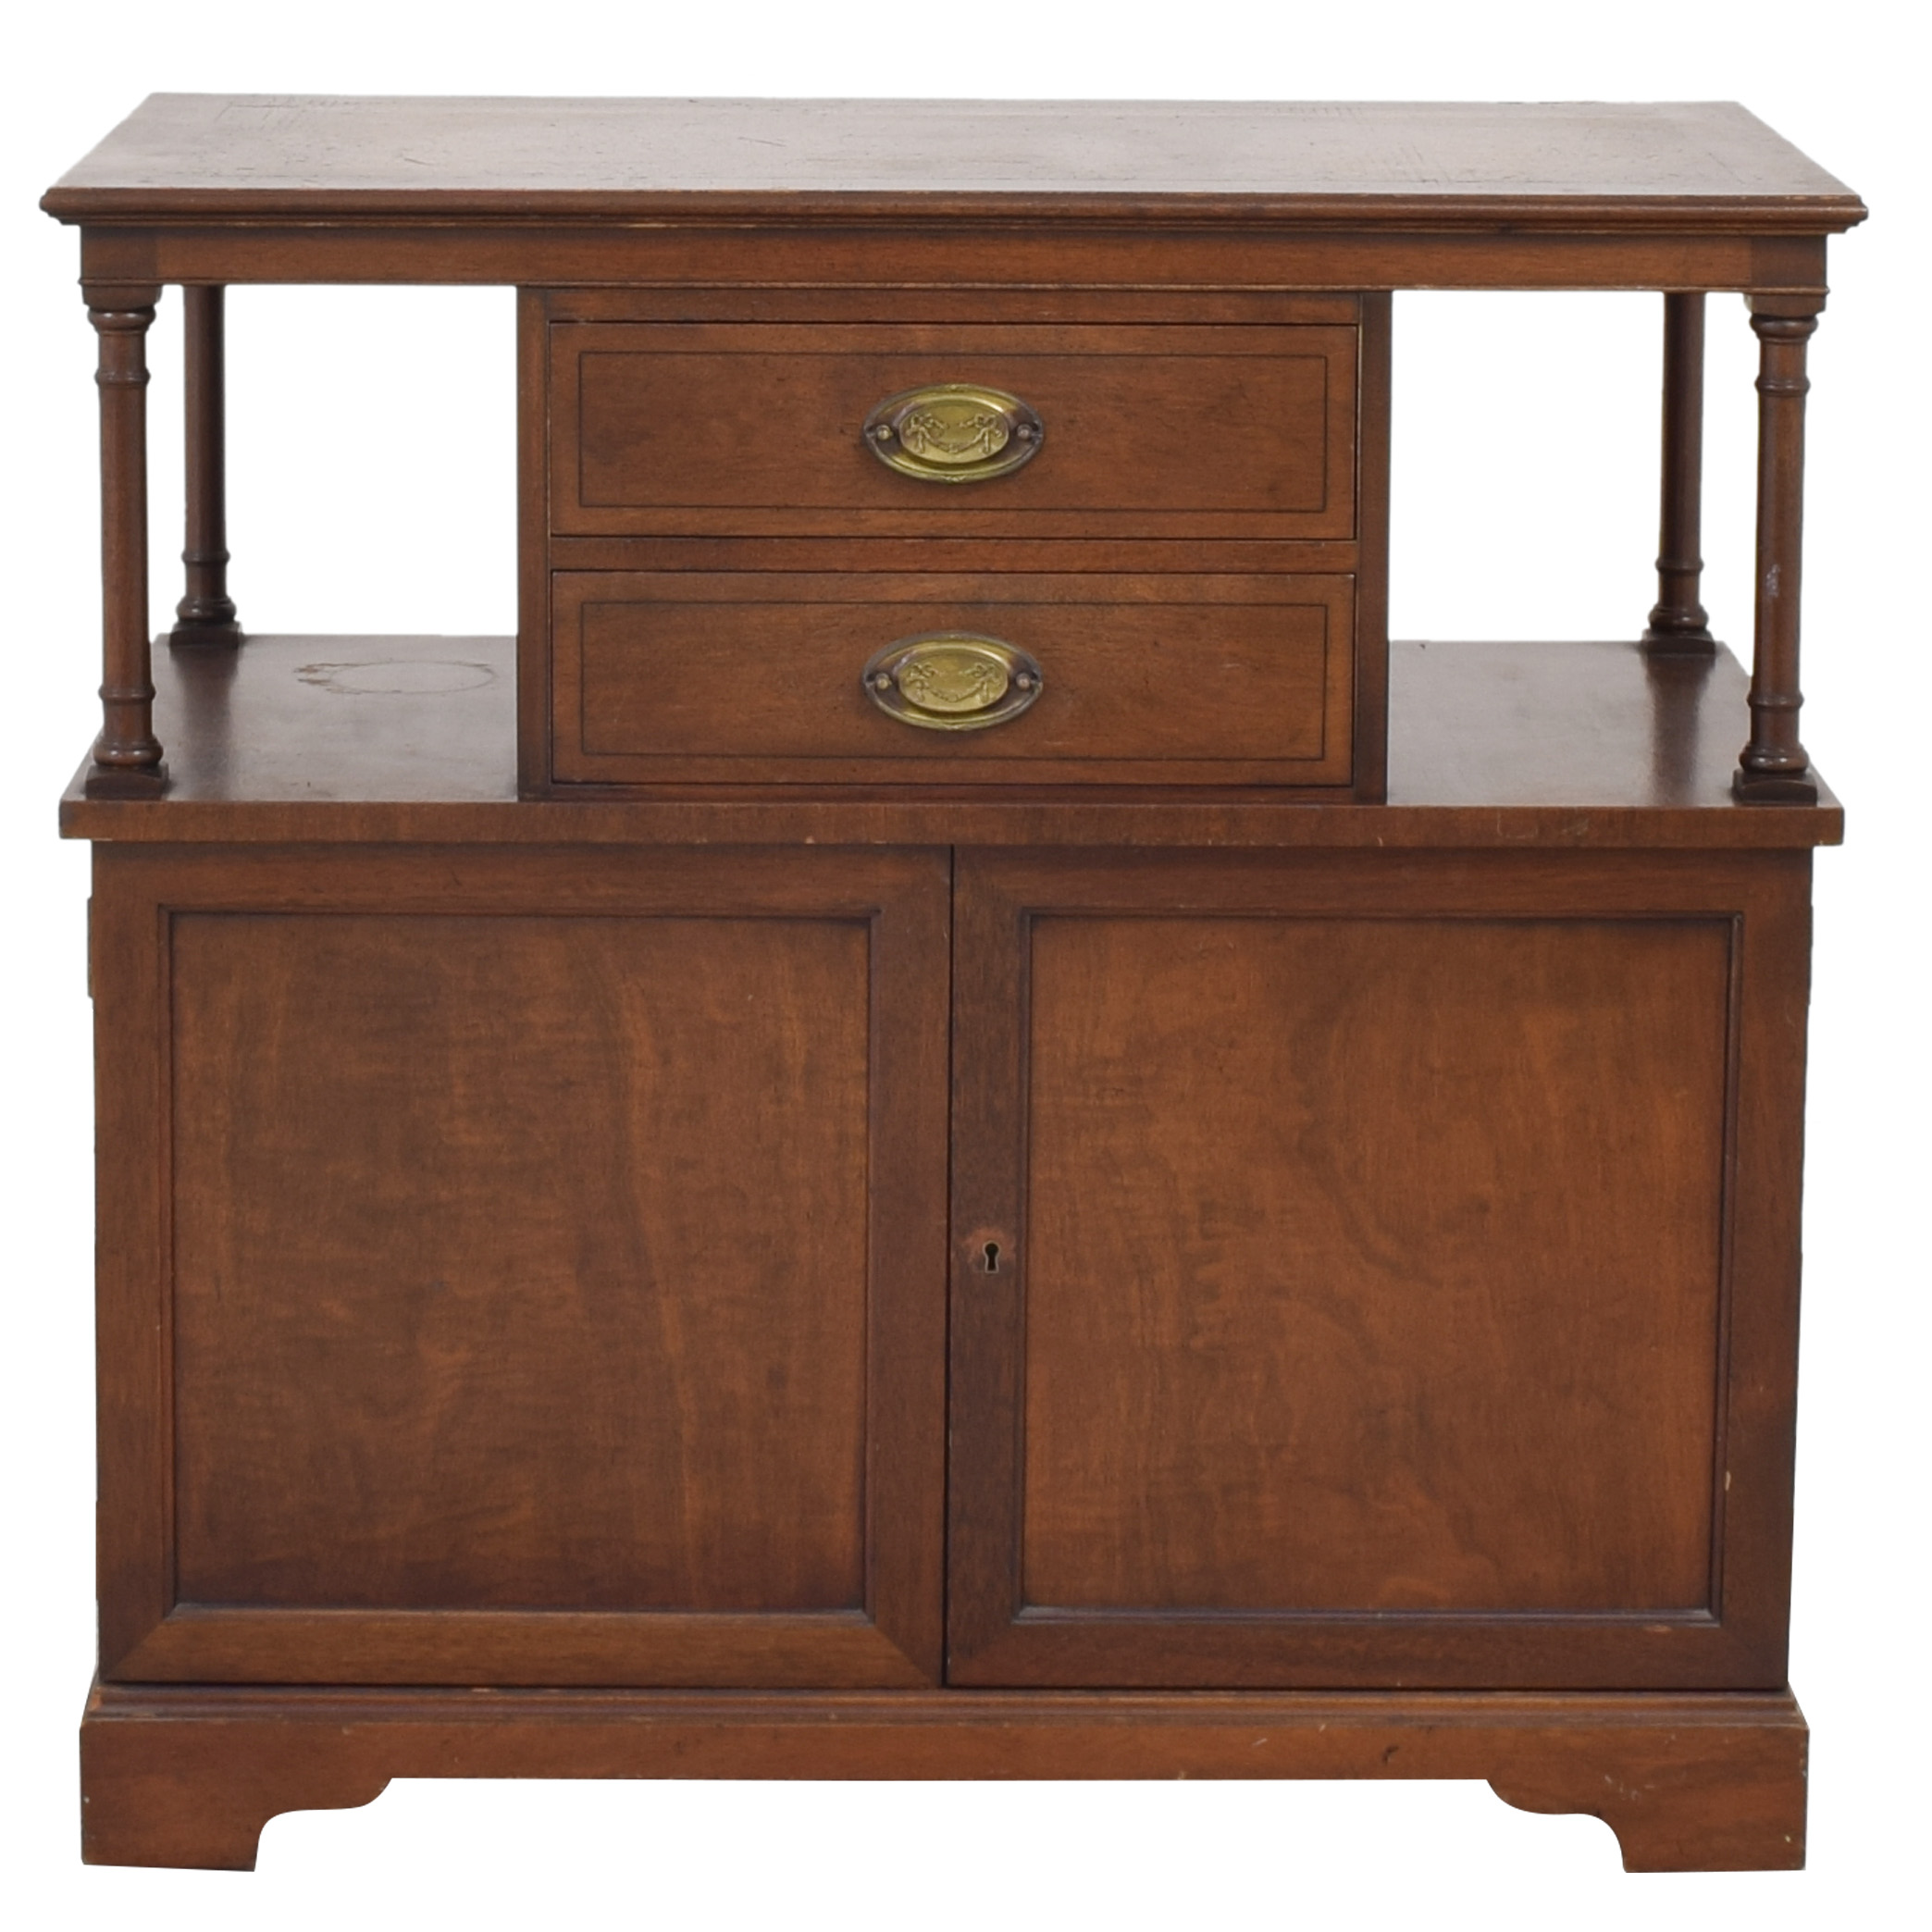 Henredon Furniture Henredon Furniture Extending Cabinet pa